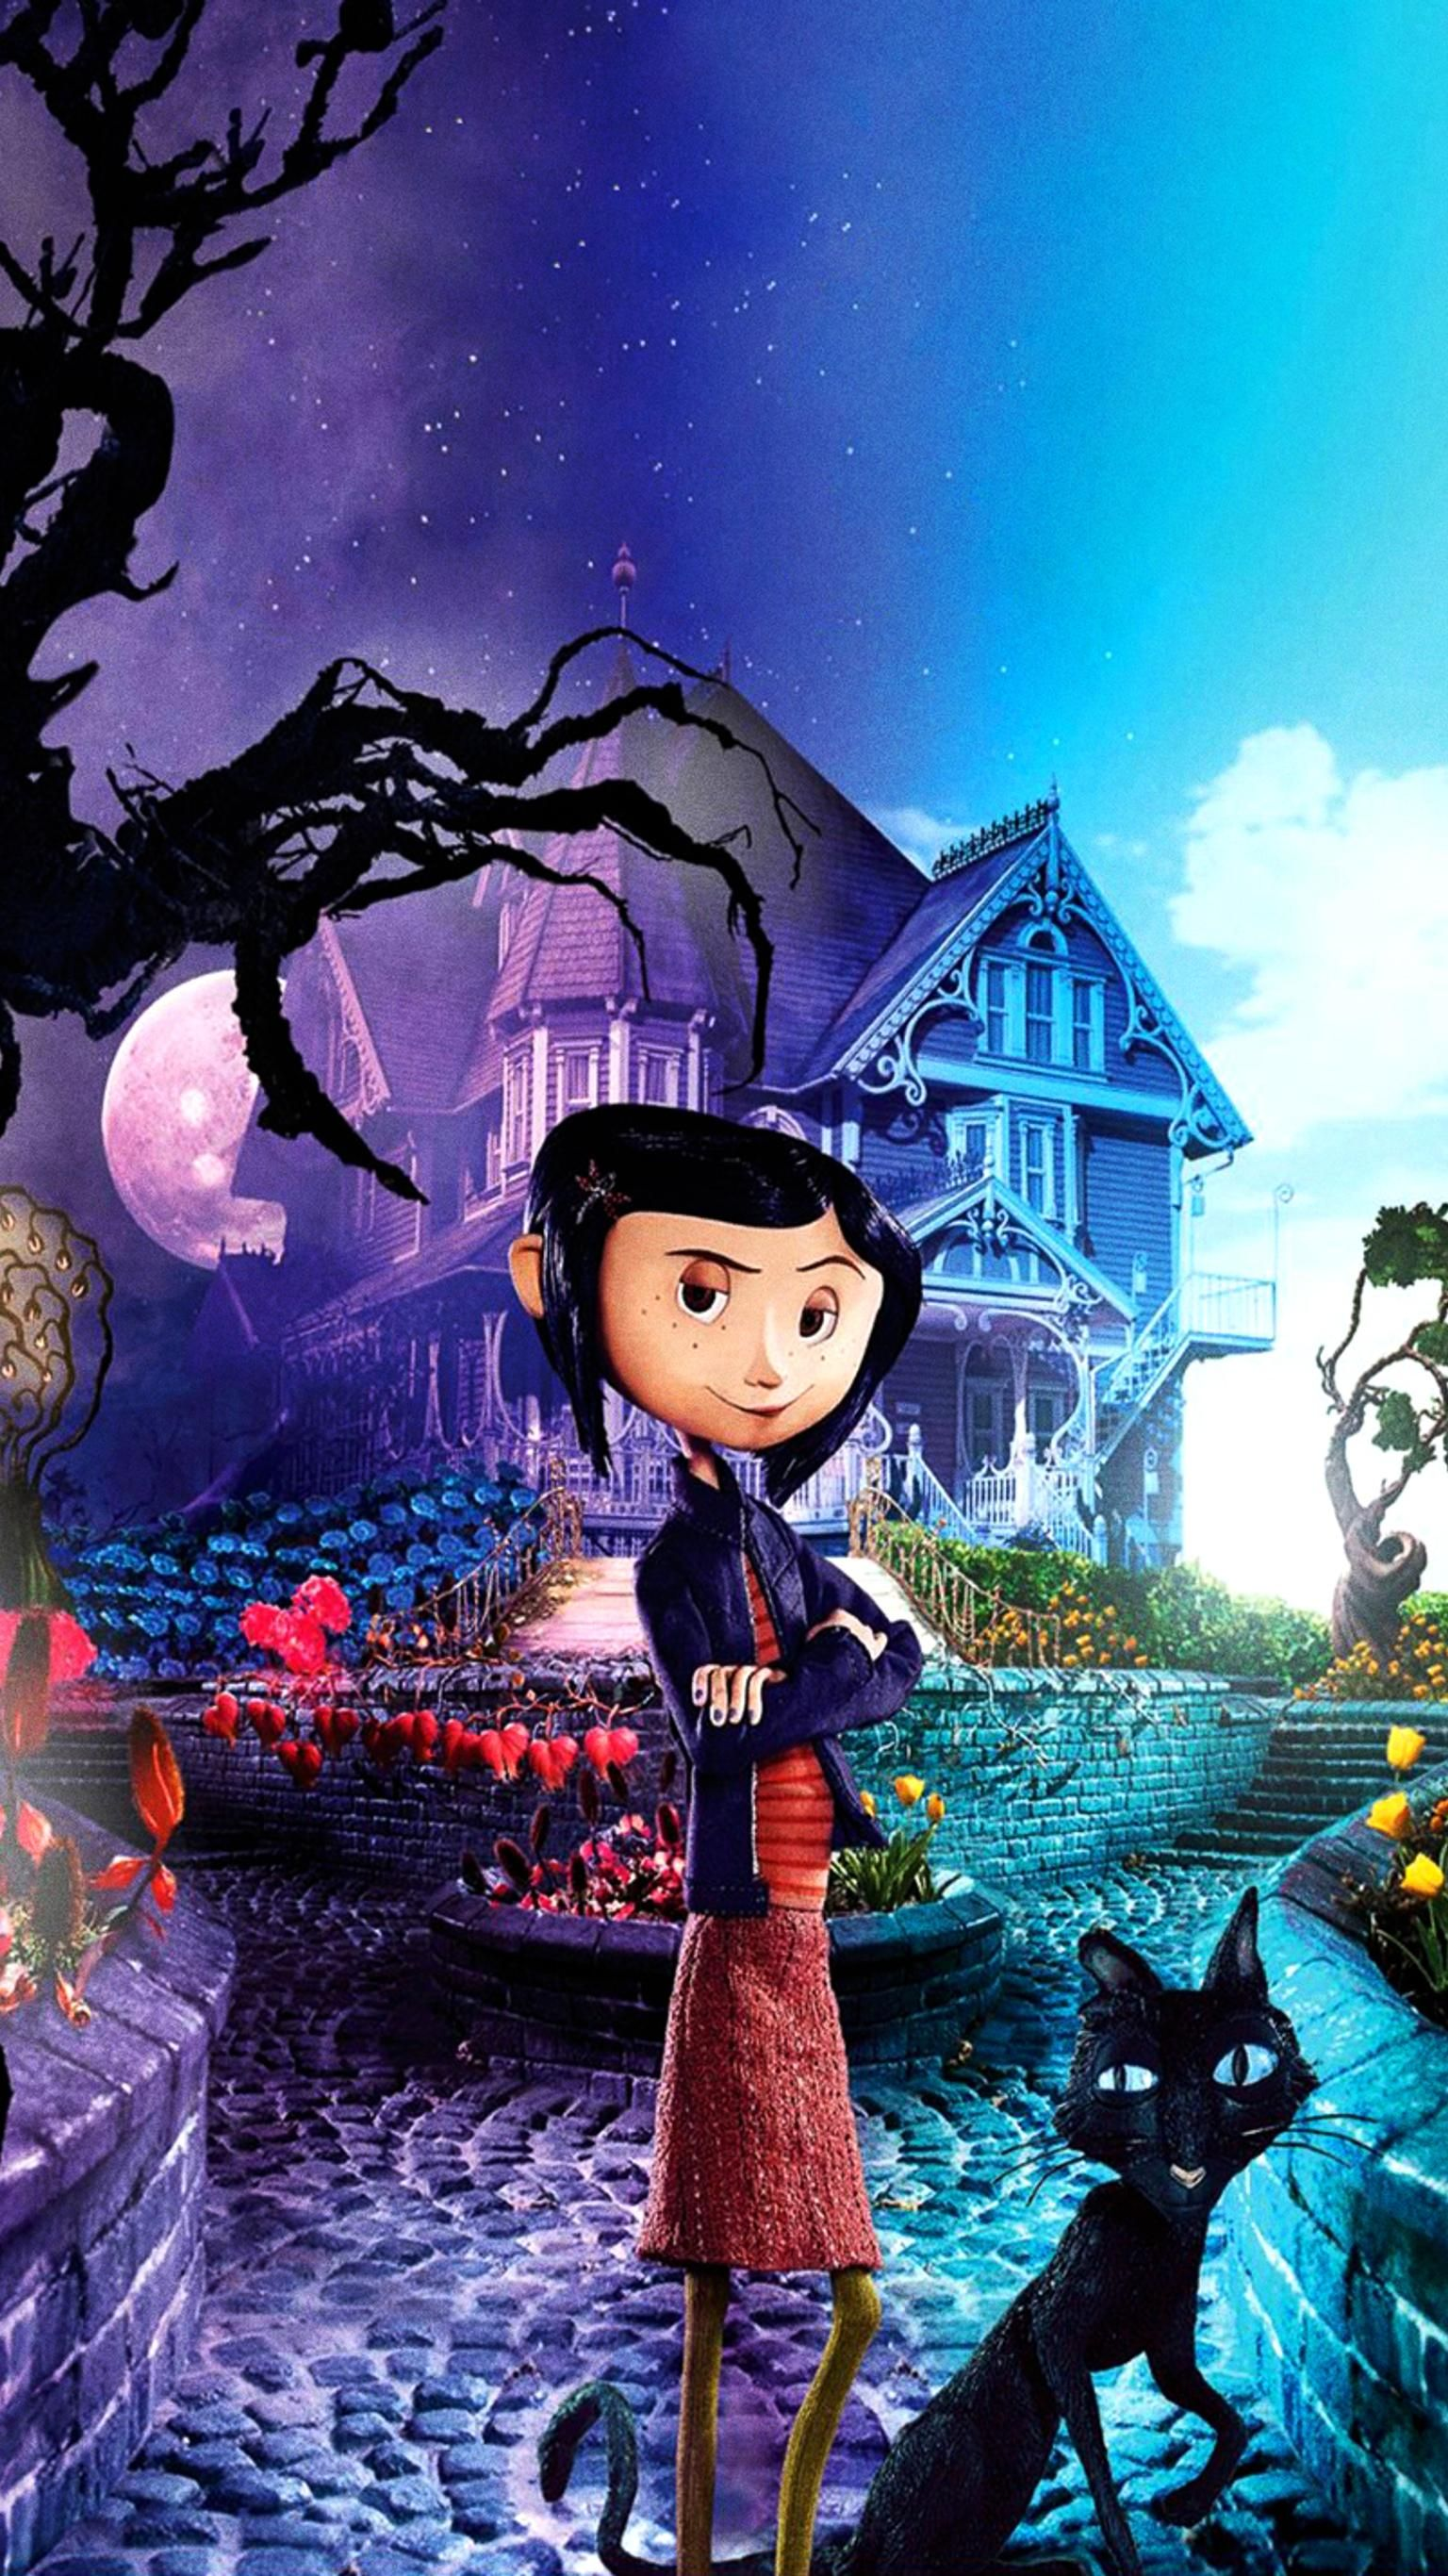 Coraline (2009) Phone Wallpaper | Moviemania | Coraline, Coraline jones,  Coraline art